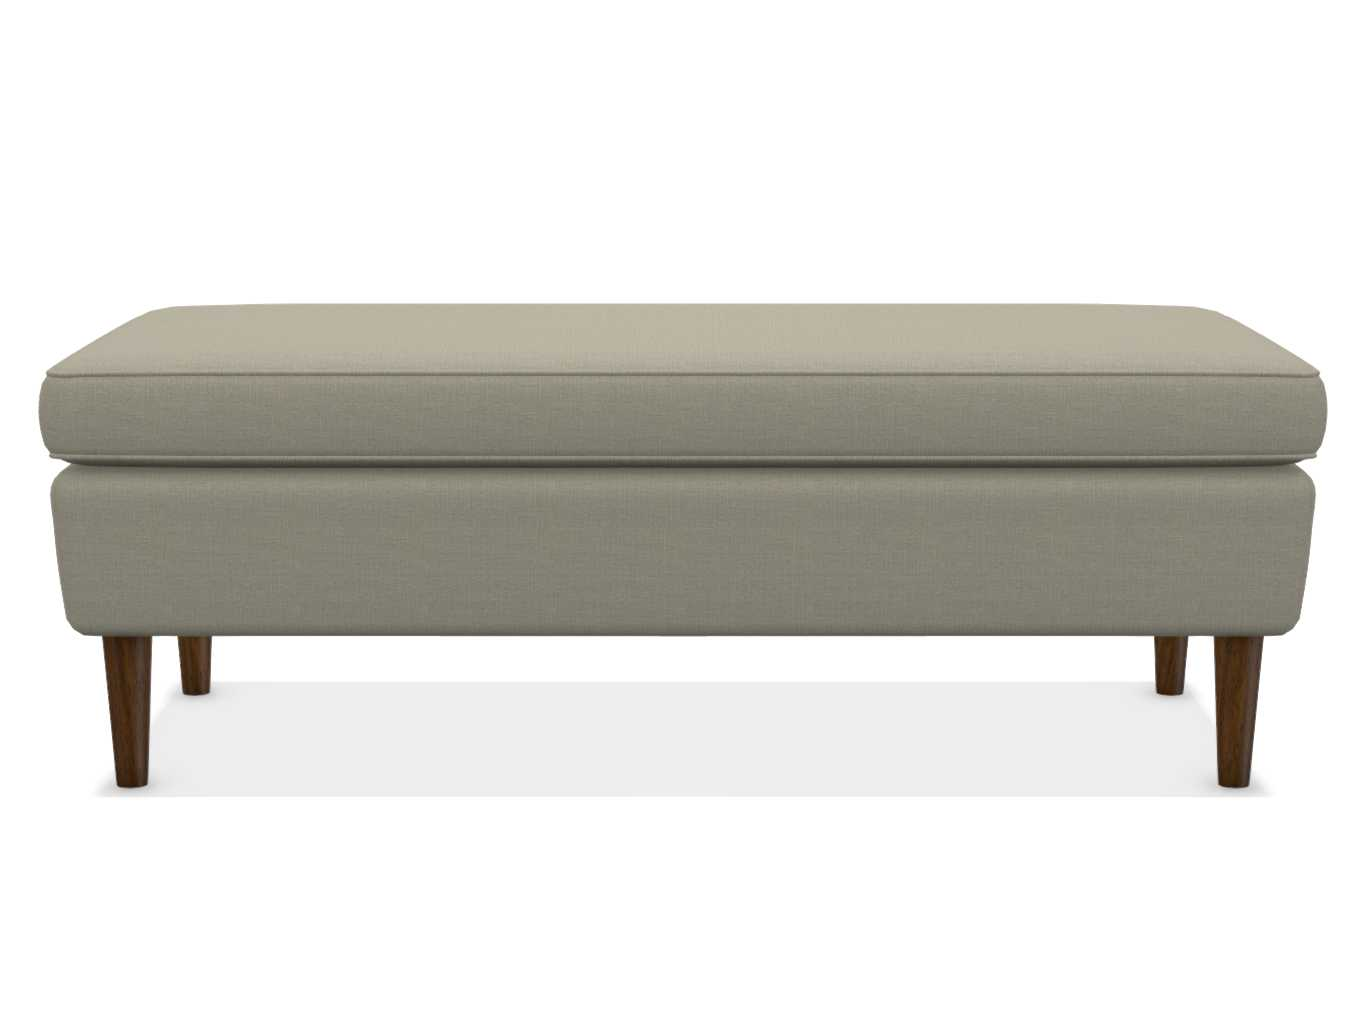 Gypsy Accent Ottoman in Sand